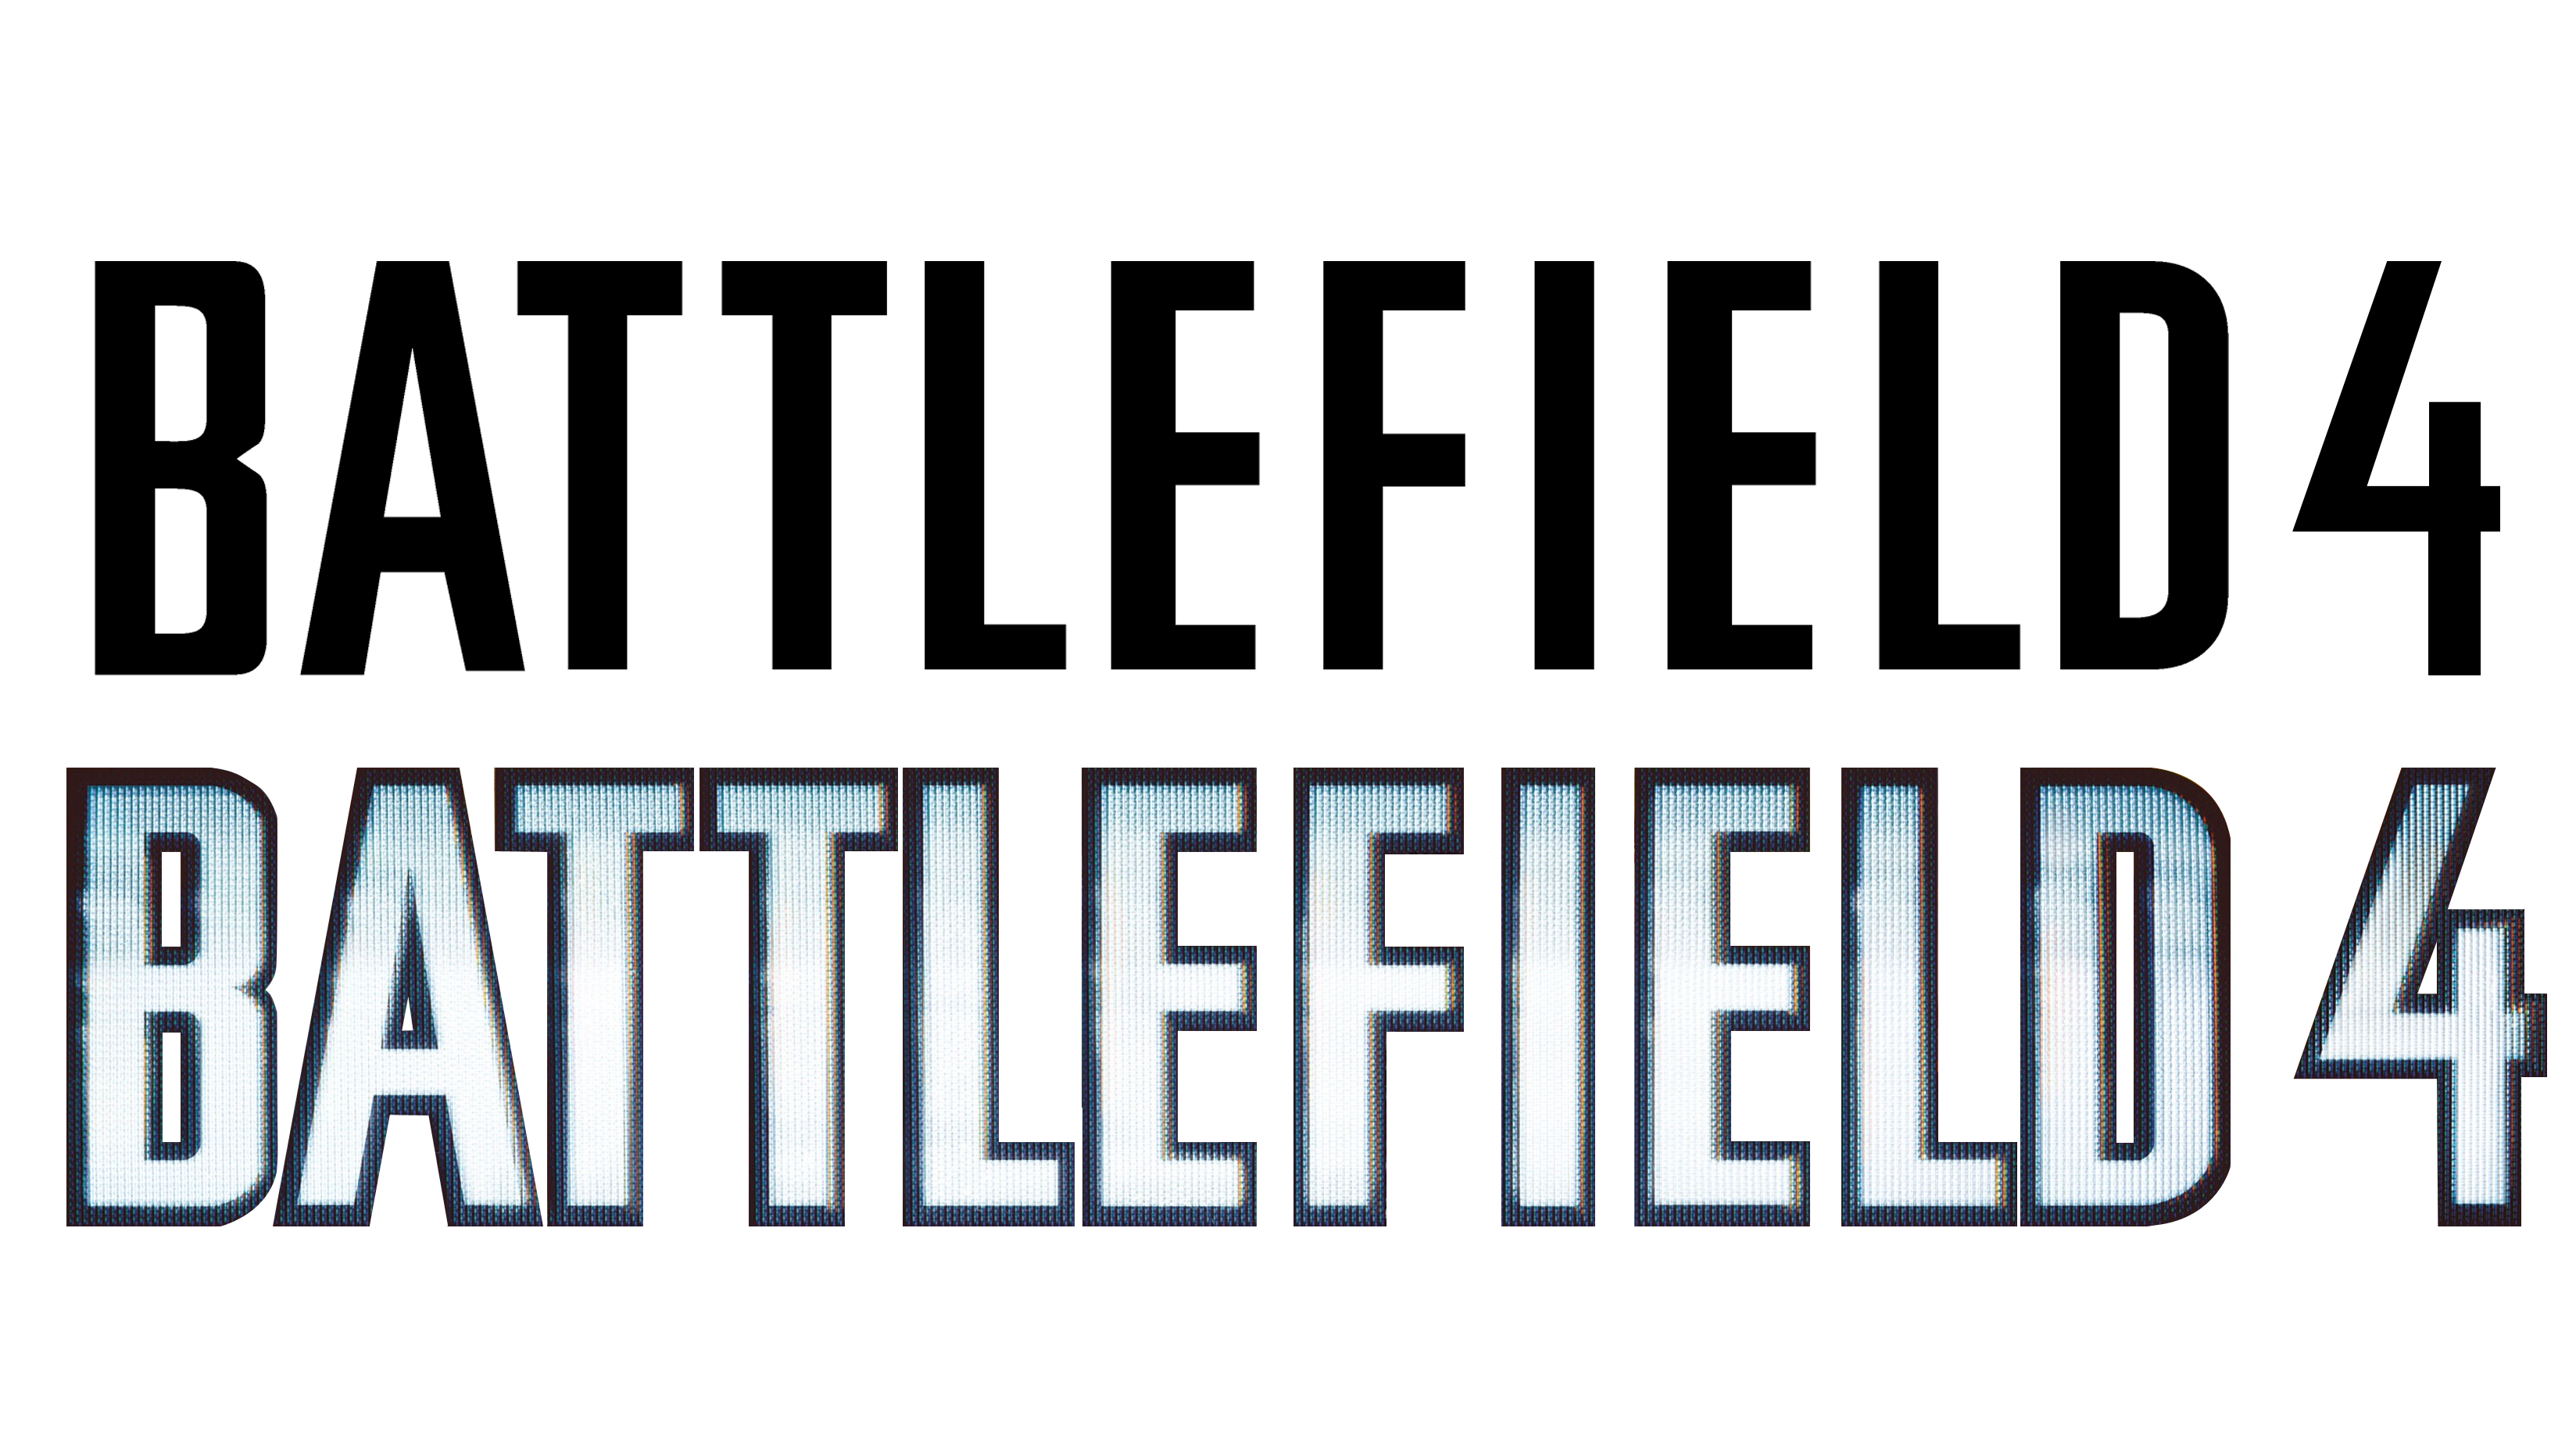 Battlefield 5 logo png. Official render by muusedesign